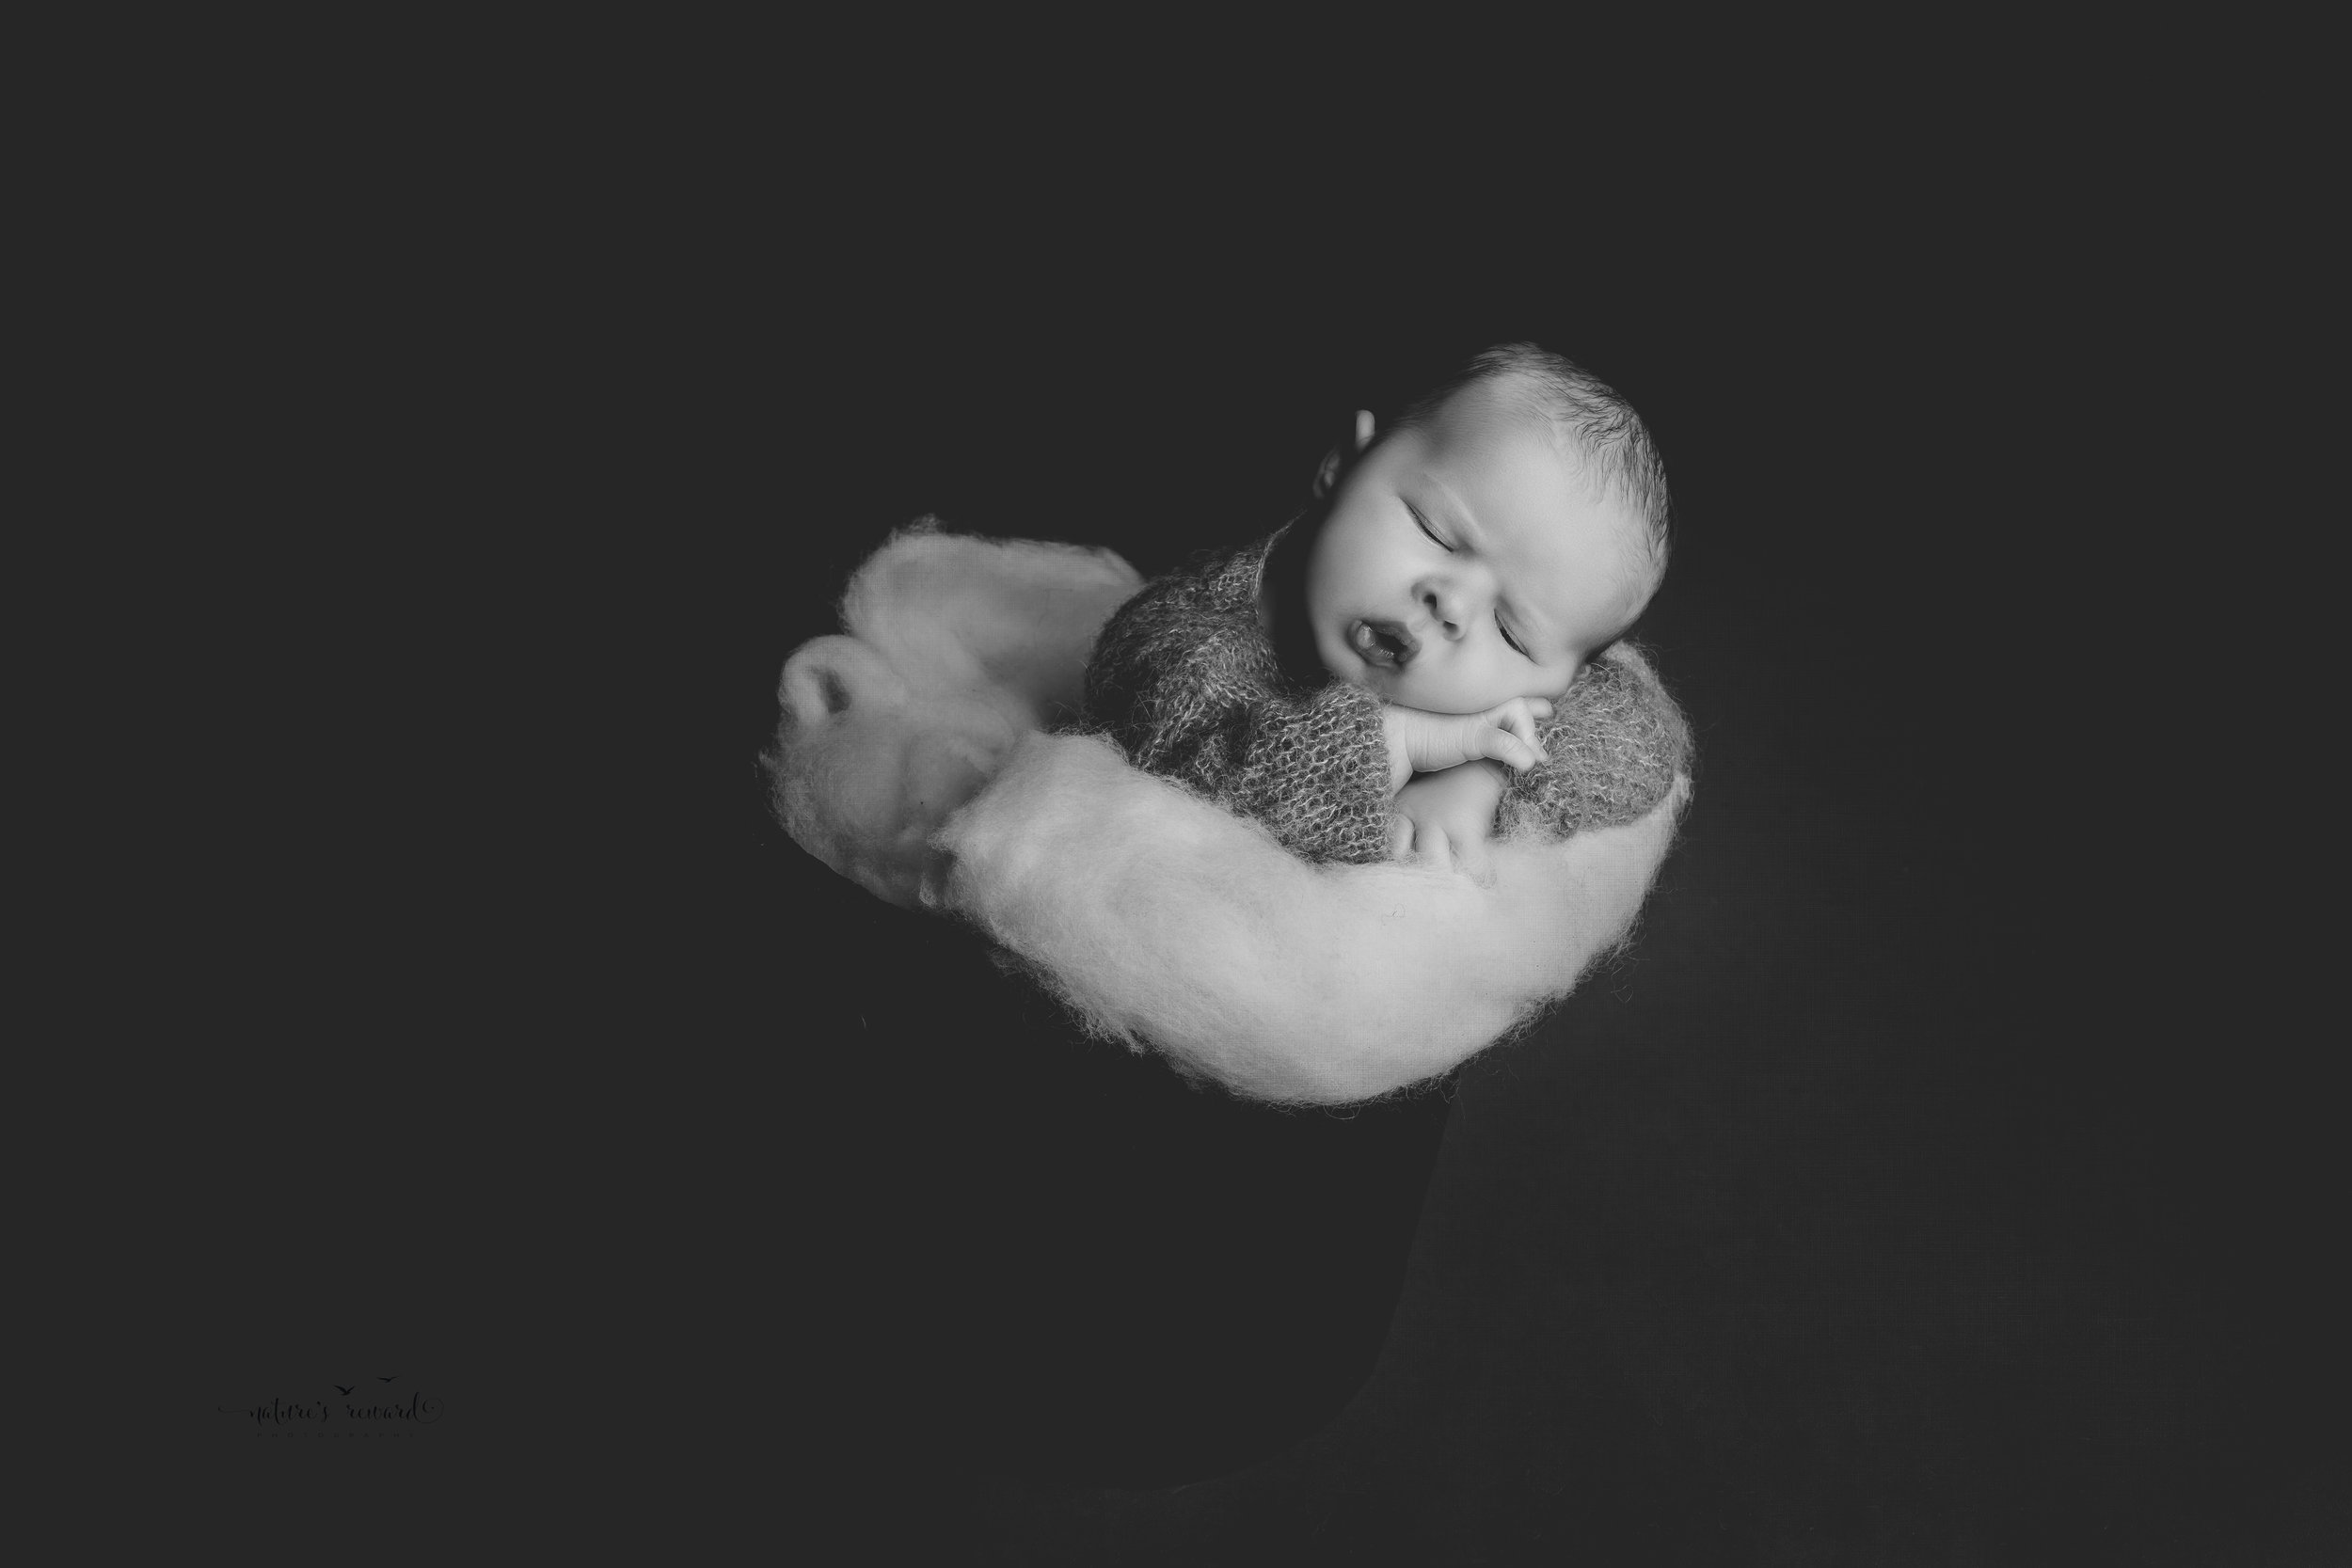 Newborn Baby boy in a bucket, a black and white portrait by Nature's Reward Photography